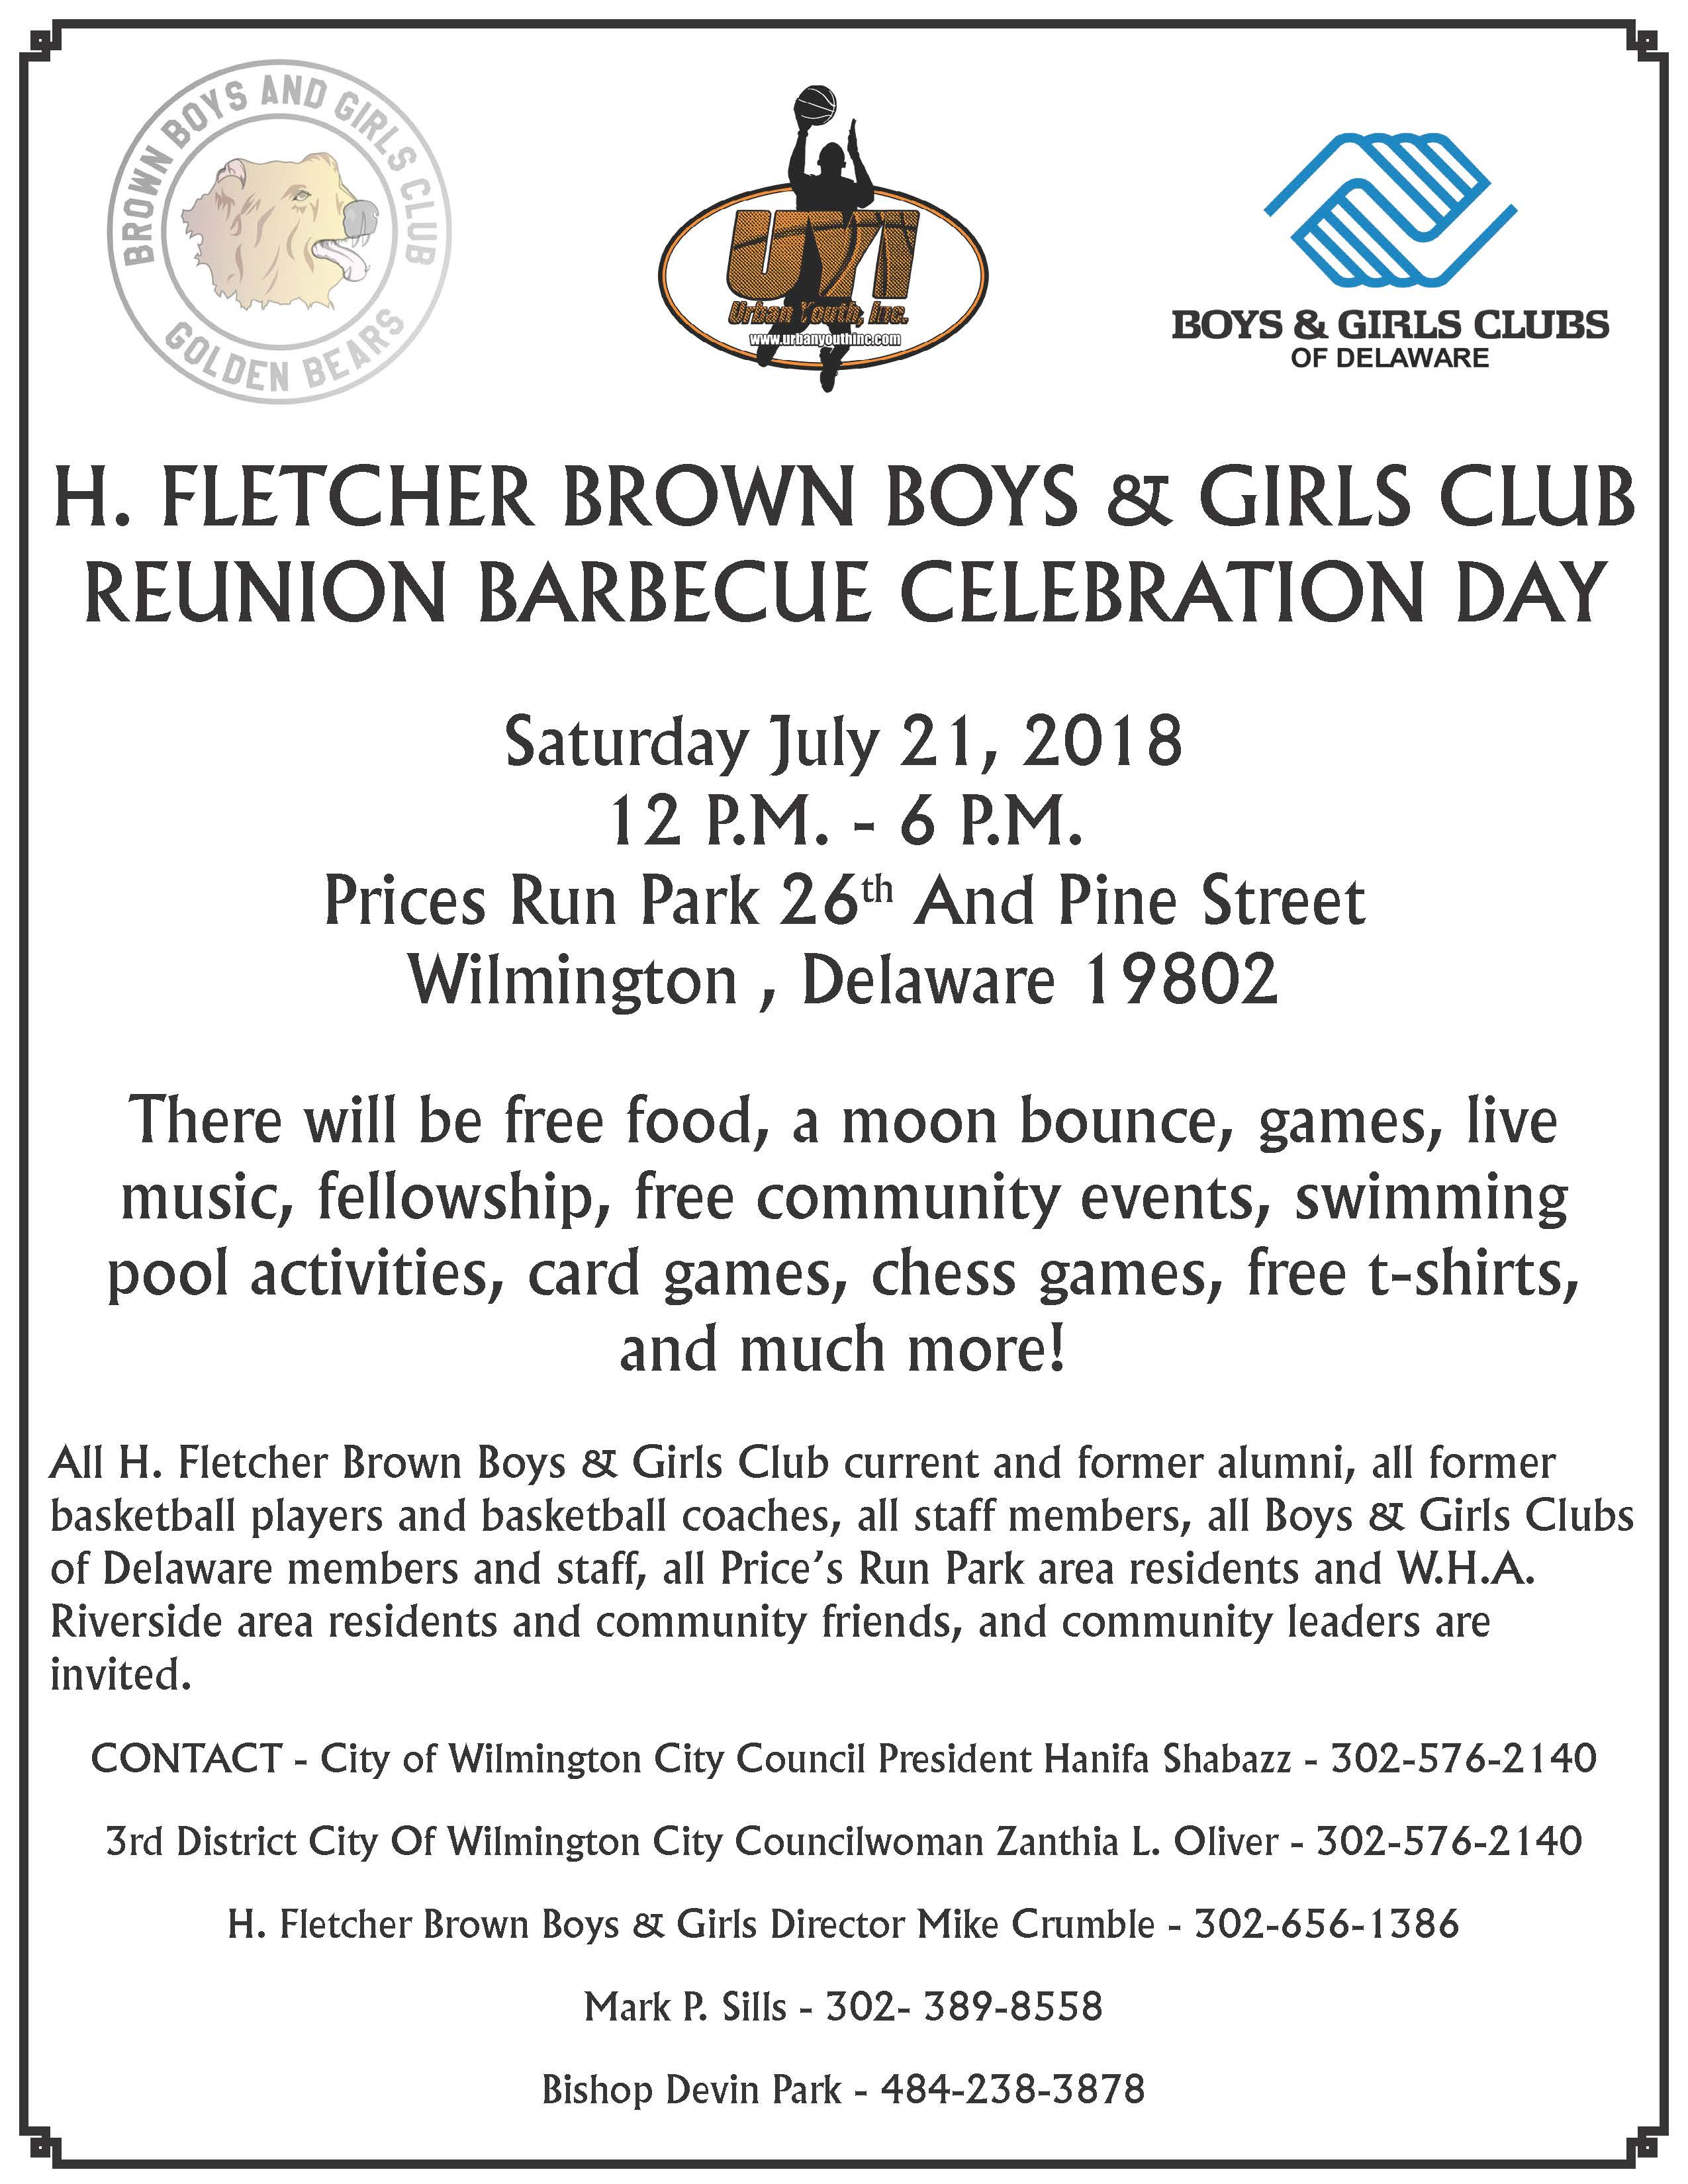 Brown Club Reunion Barbecue Celebration